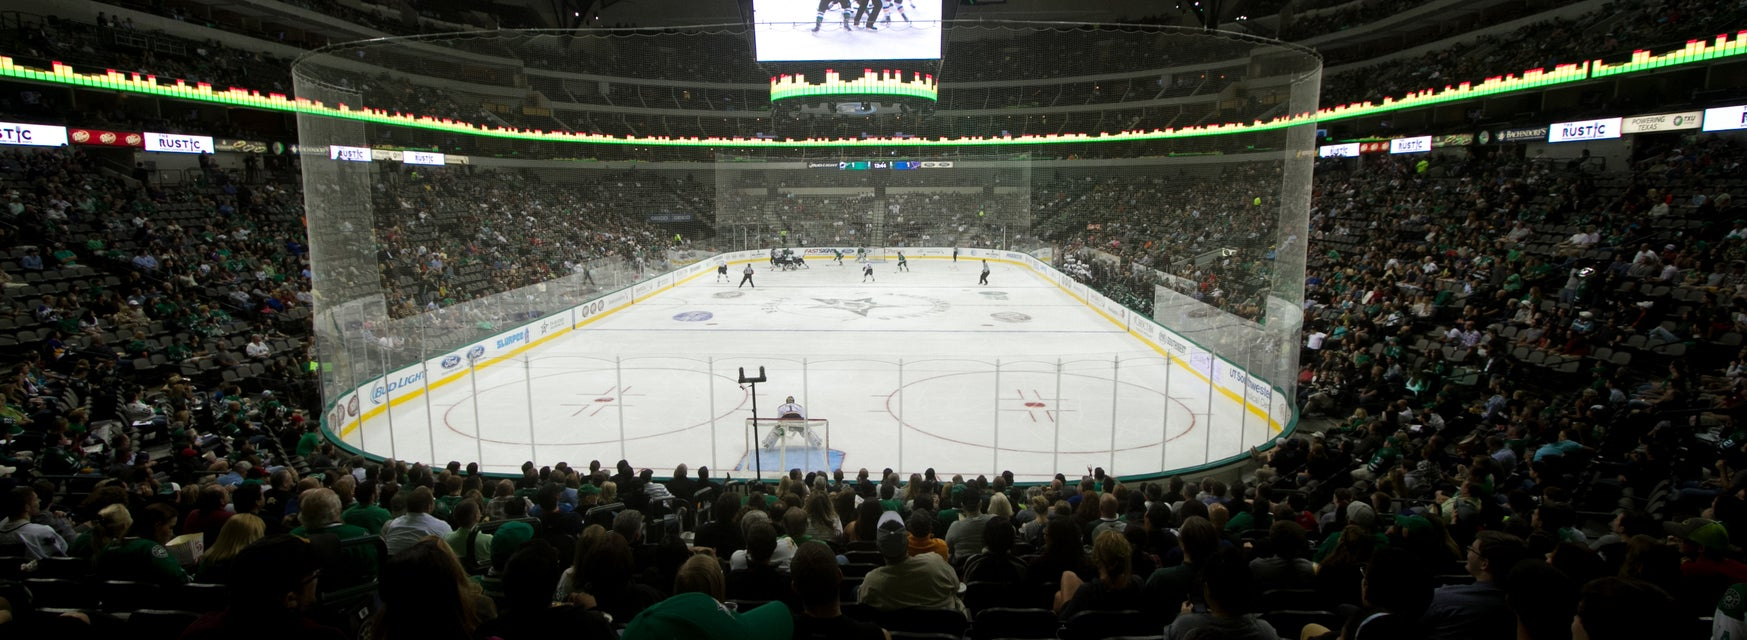 Seat view from Gold